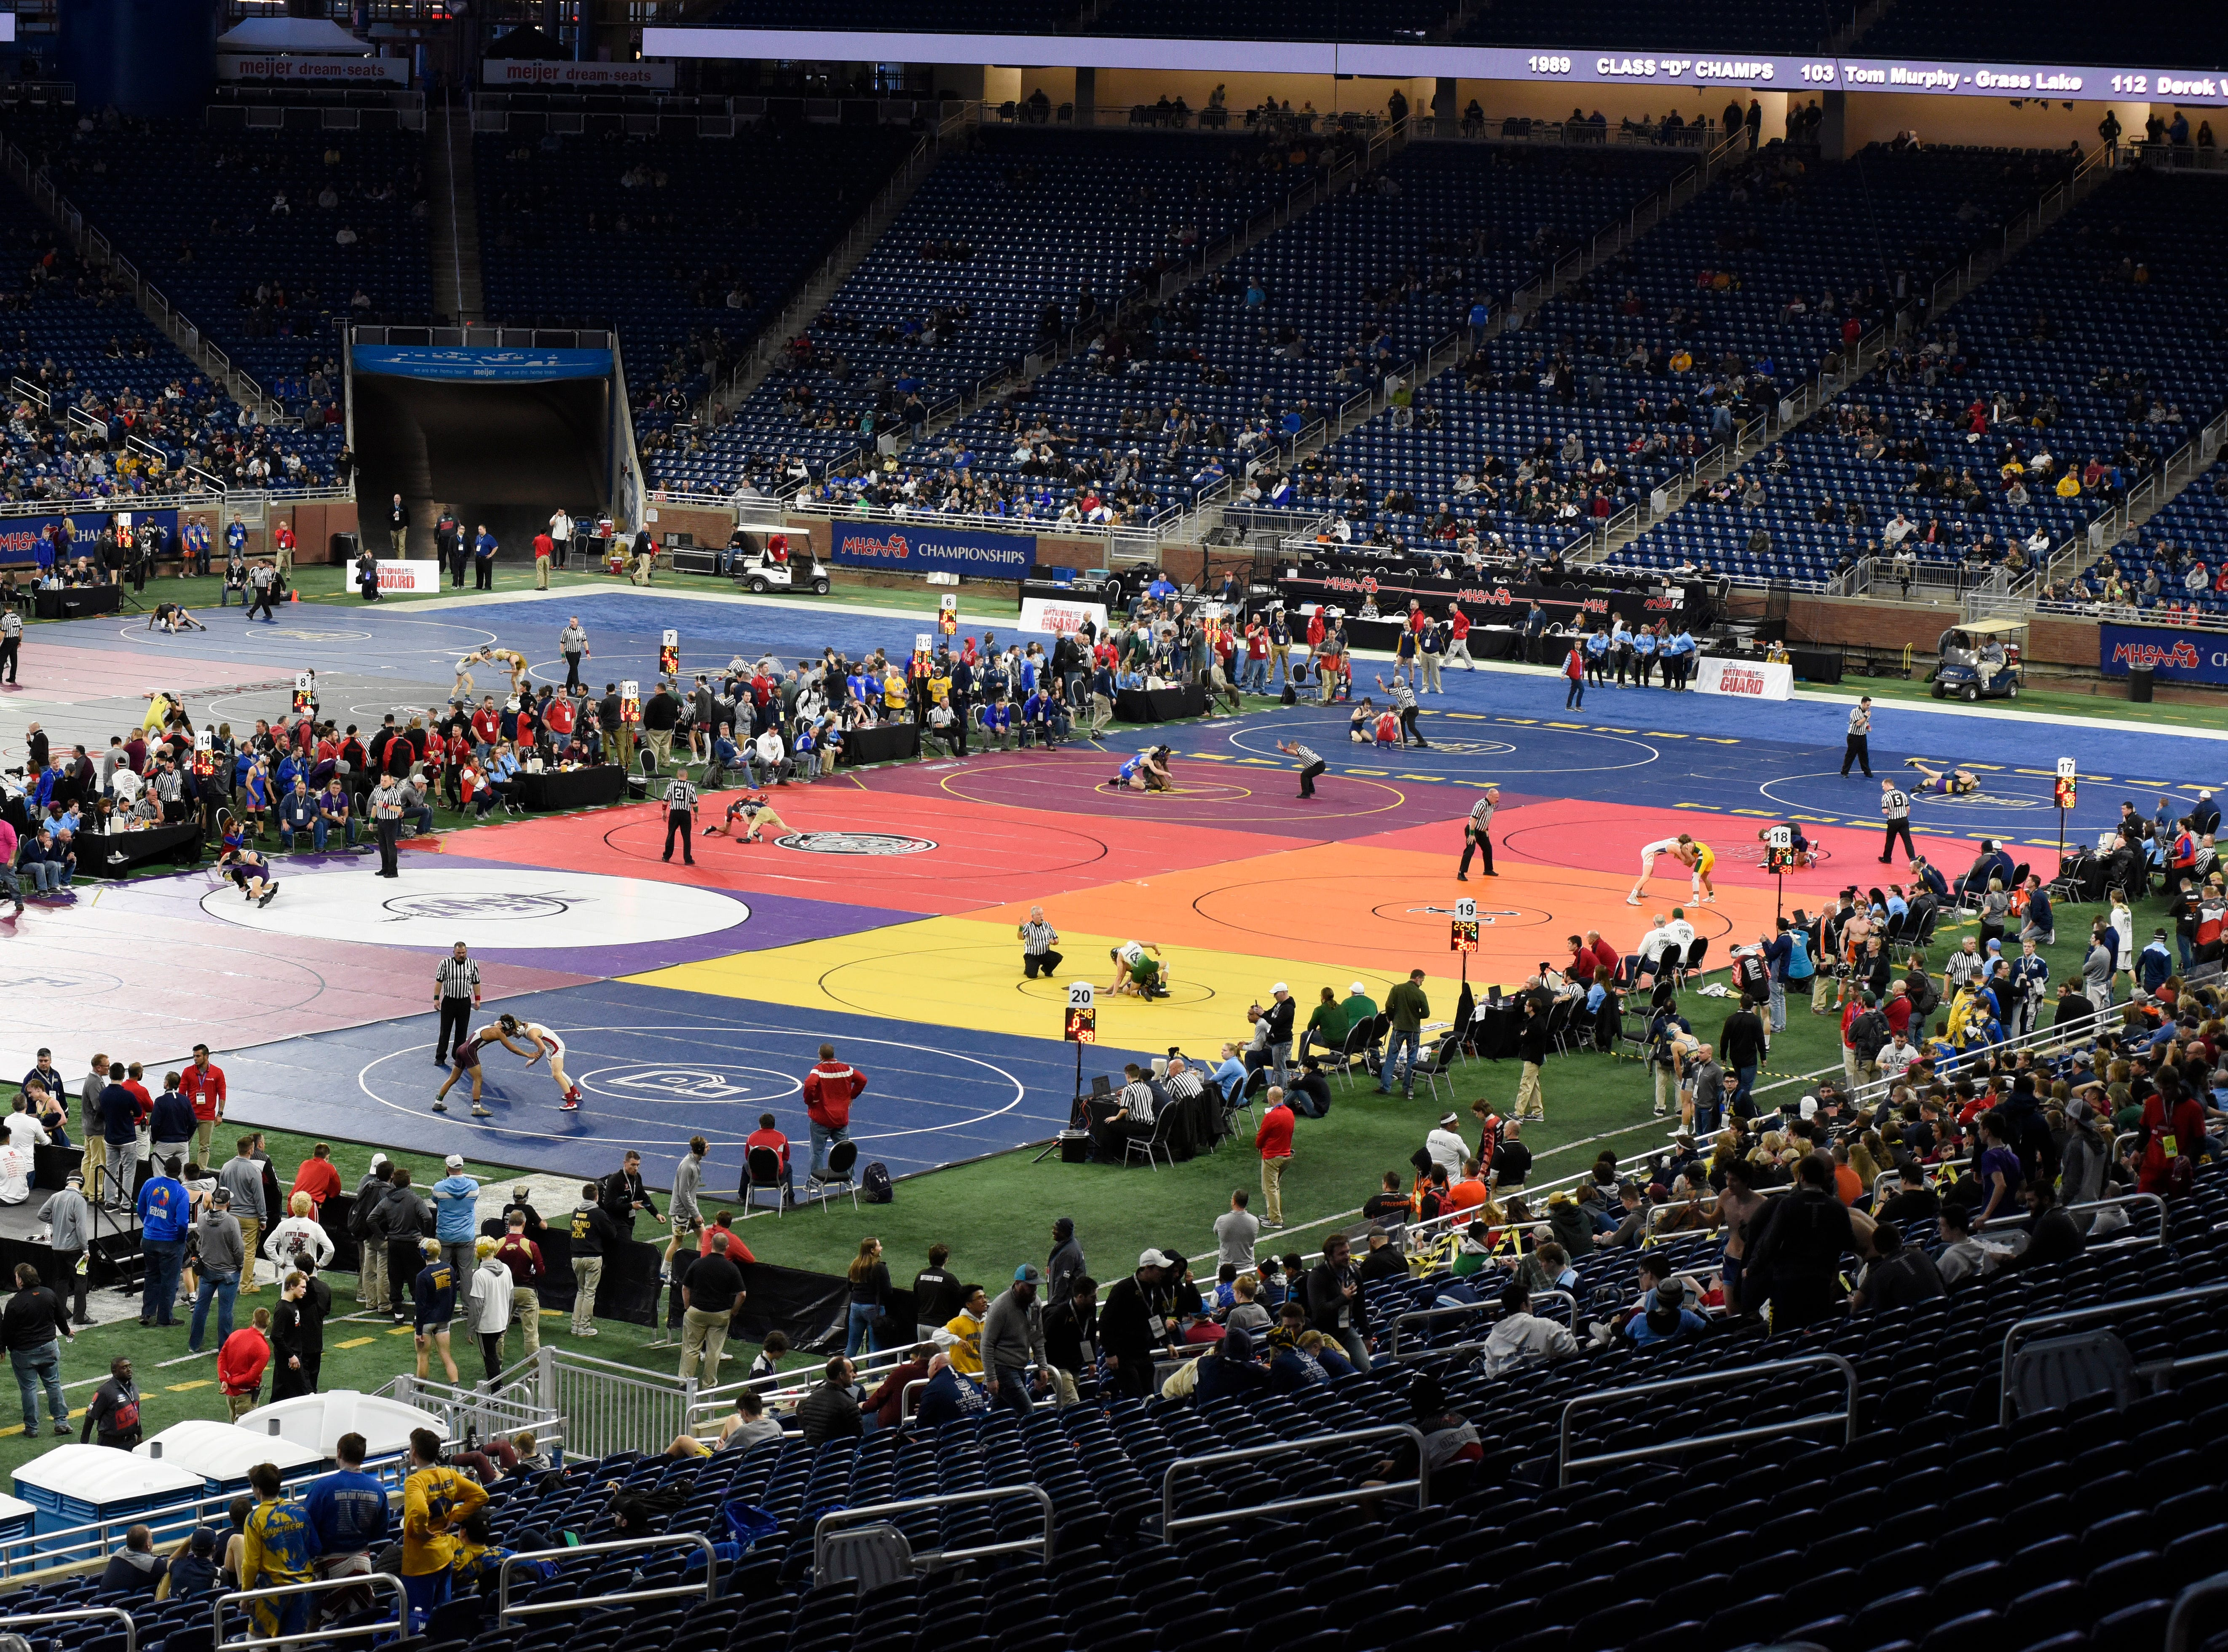 The MHSAA wrestling quarterfinals take place on multiple mats at Ford FIeld in Detroit Friday.